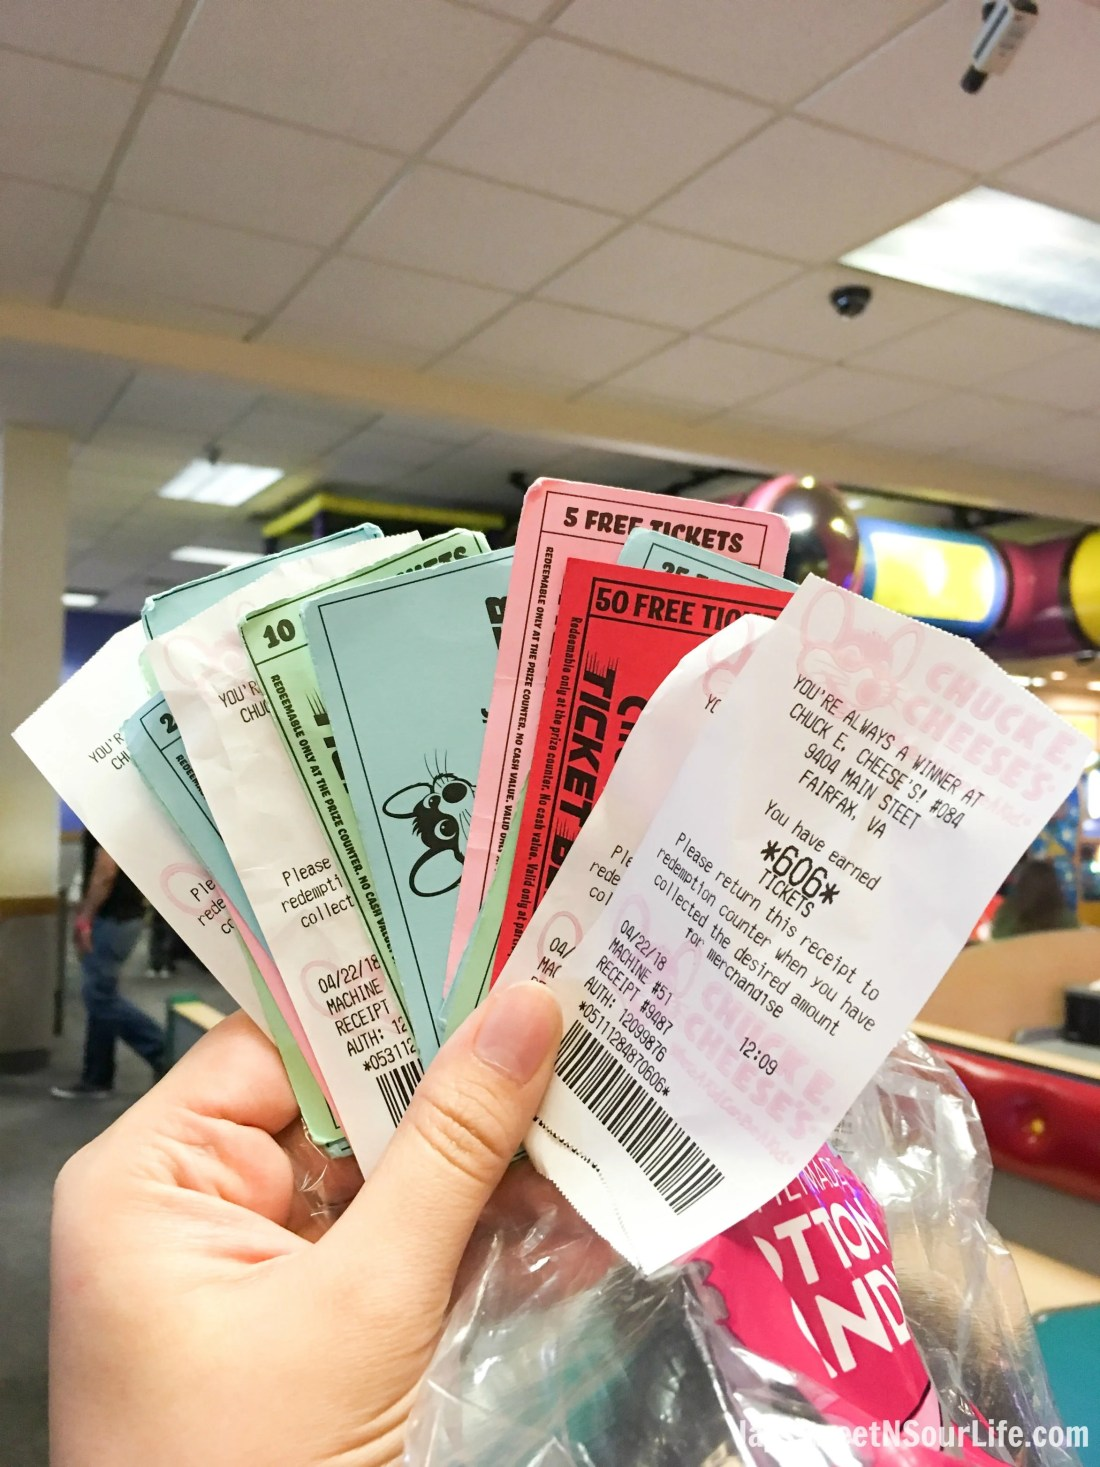 Chuck e cheeses VIP birthday Party ticket receipts to claim for prizes. Book your party today and have guests enjoy 2 hours of unlimited game play.